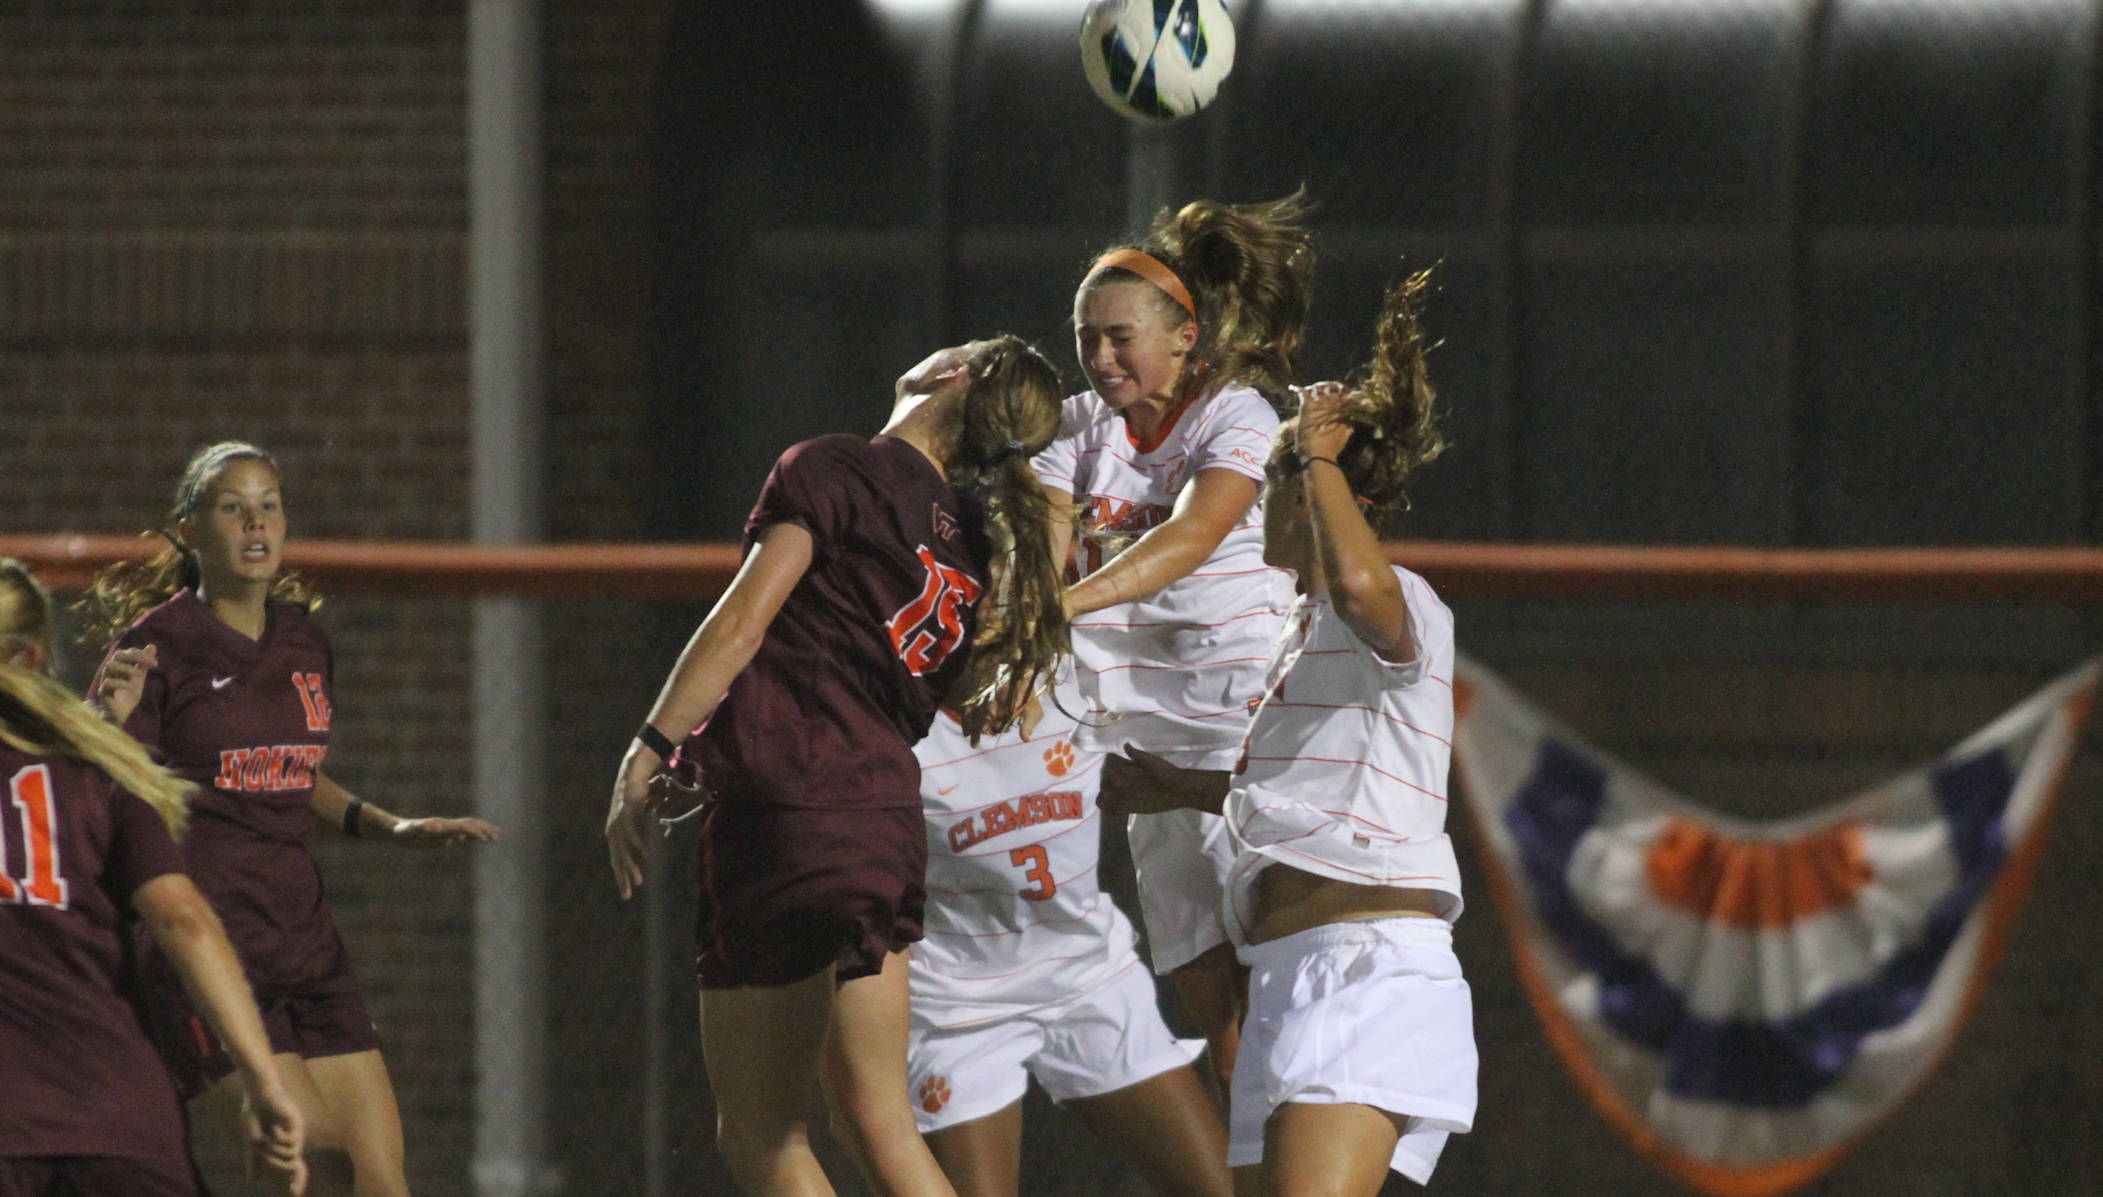 Tigers Fall to #22 Virginia Tech Thursday Night at Historic Riggs Field